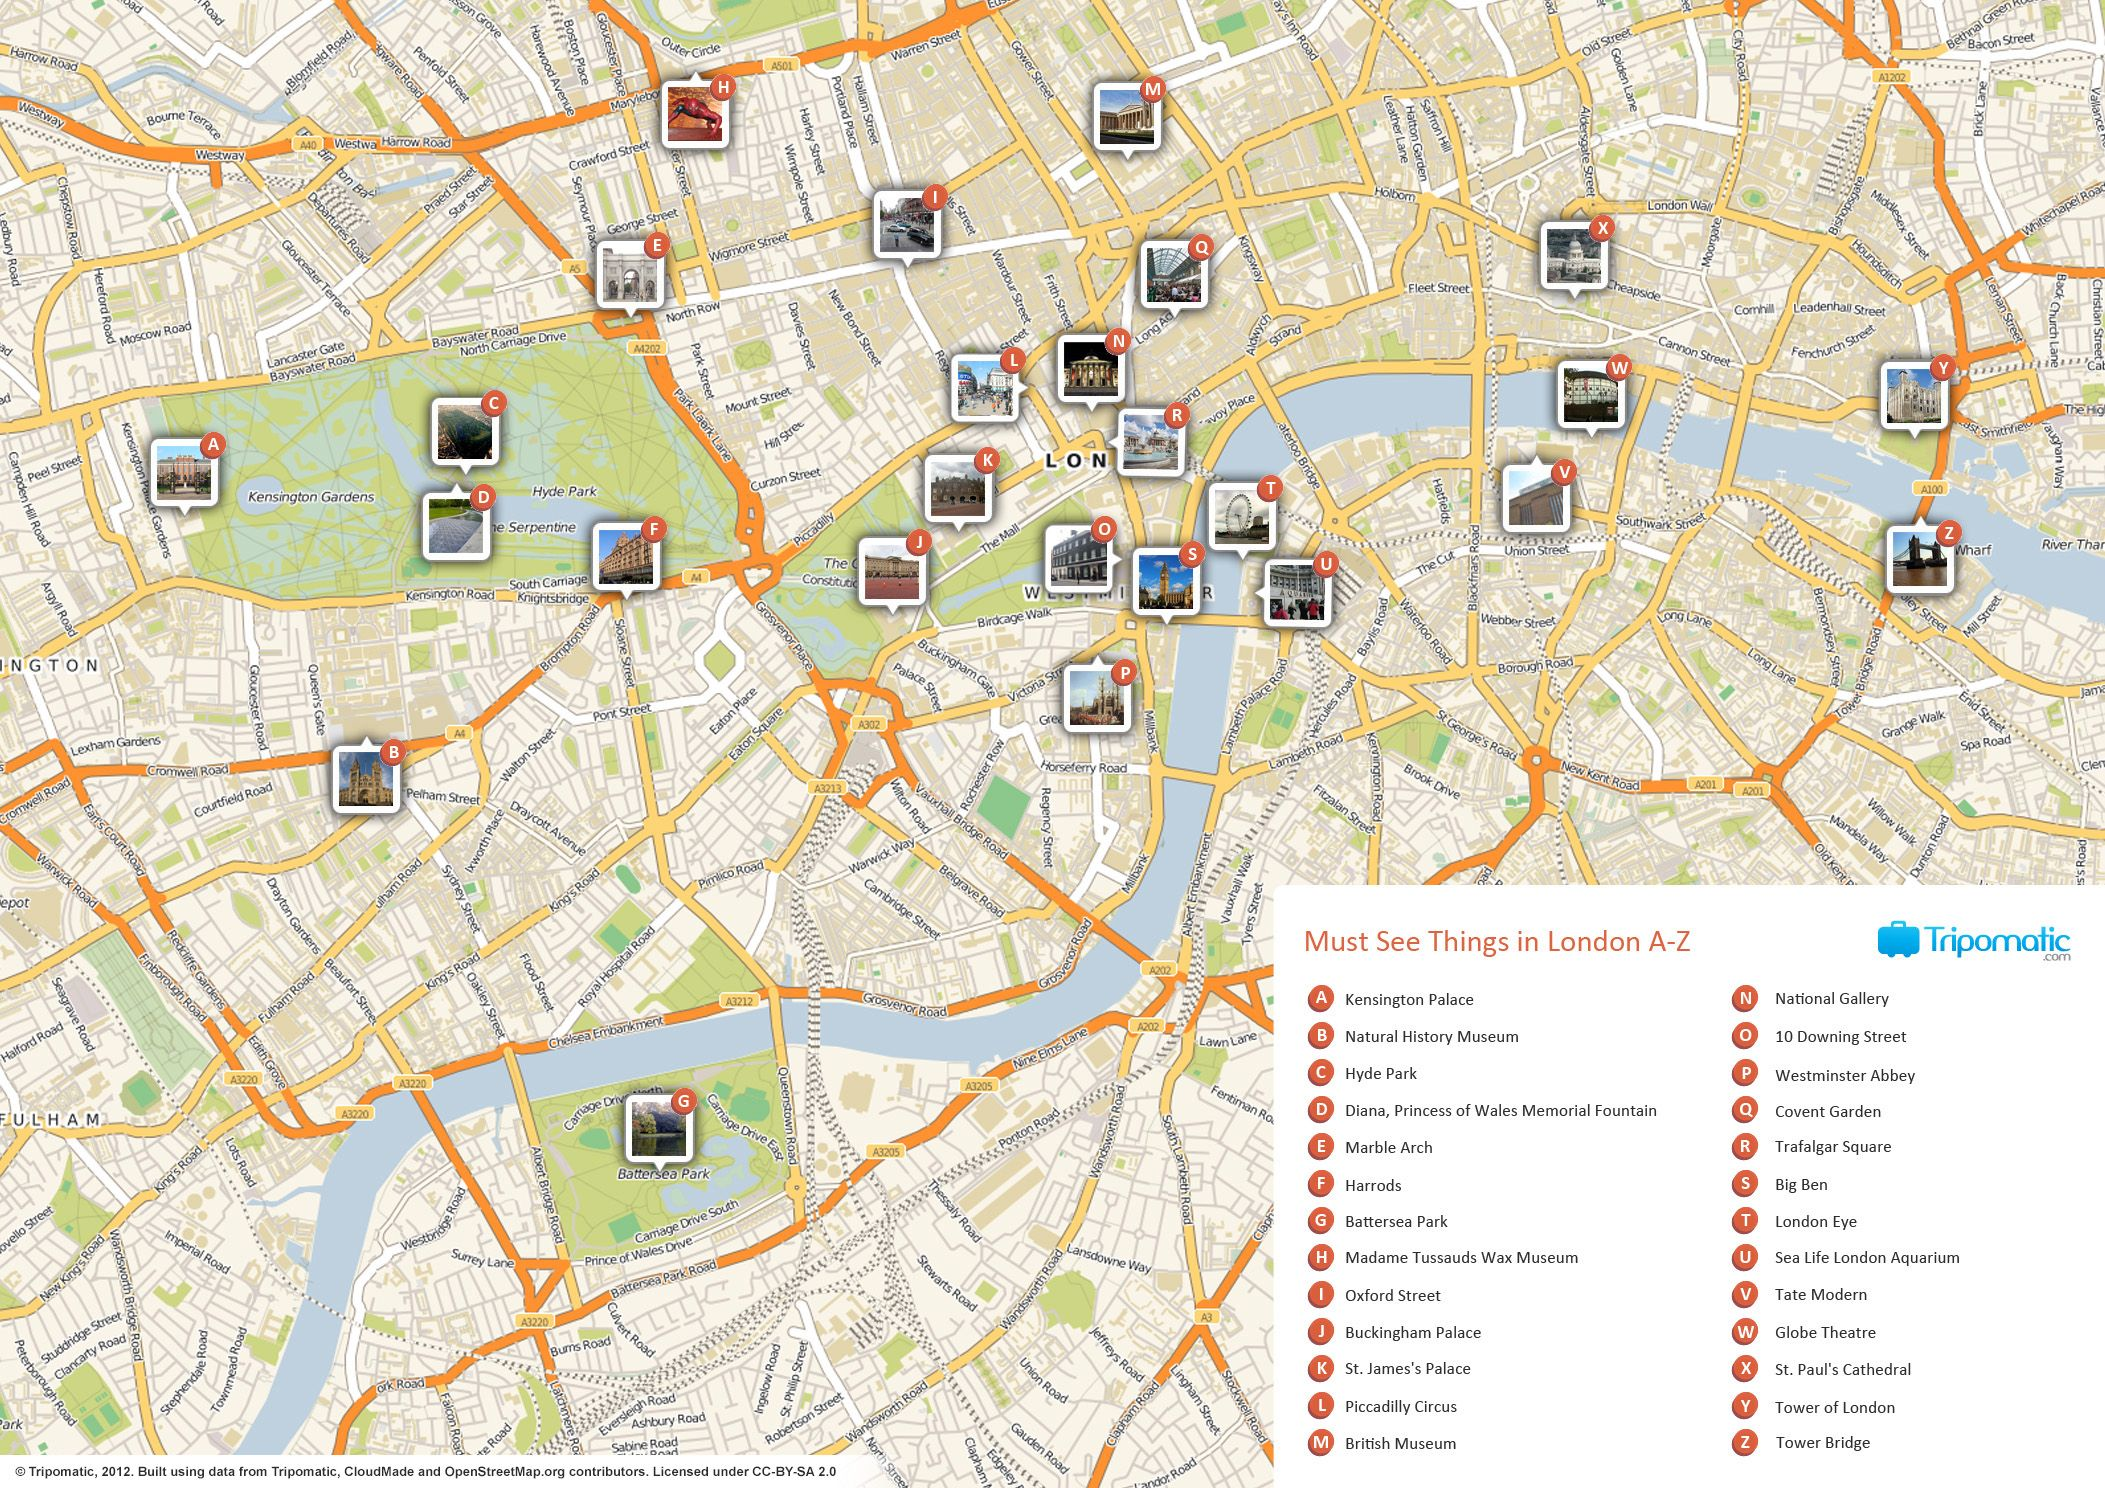 Map of London attractions | Tripomatic.com | Vacation Ideas ... Map Of Paris Tourist Spots on map of paris train stations, map of paris police stations, map of paris airports, map of paris river, map of paris churches, map of paris monuments, map of paris vintage, map of paris roads, map of paris city, map of paris railway stations, map of paris art, map of paris markets, map of paris history, map of paris tour, map of paris banks, map of paris transportation, map of paris districts, map of paris museums, map of paris destinations,